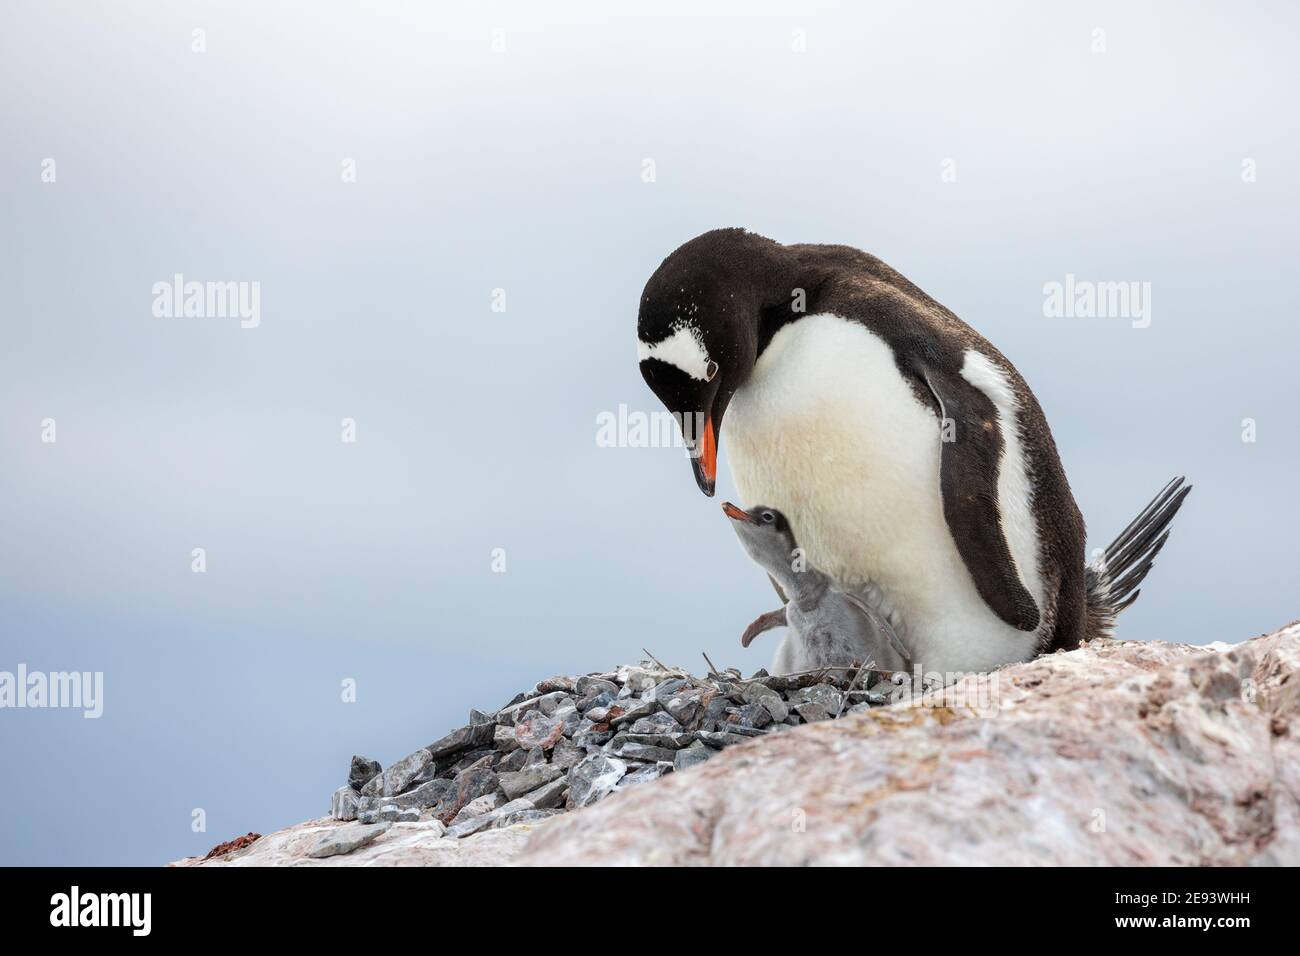 A cute gentoo penguin is about to feed its chick on a rock in a nest of stones Stock Photo